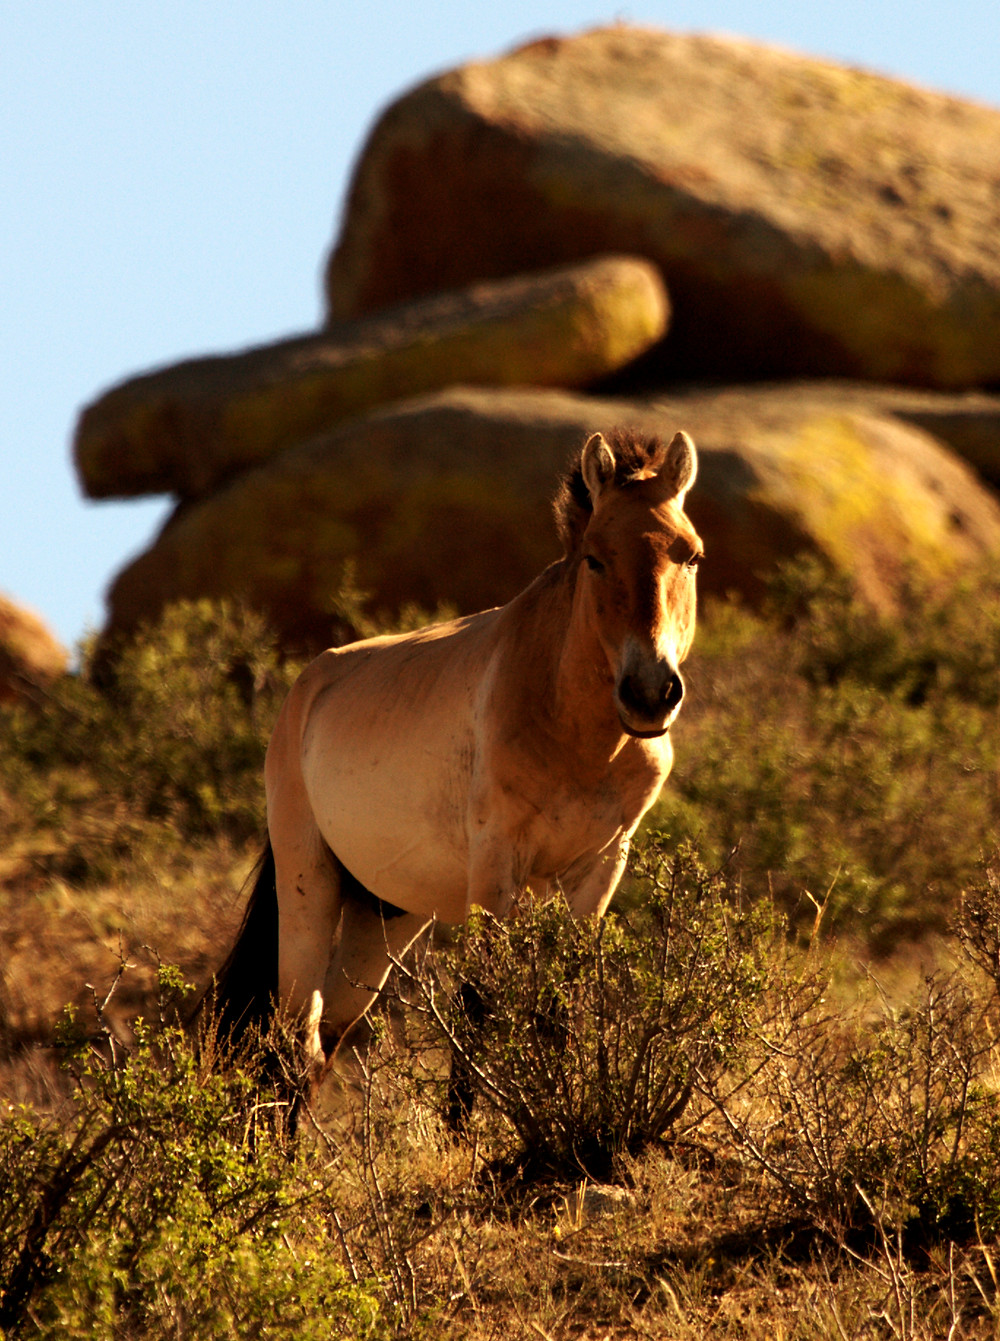 A bachelor male P-horse, off doing mysterious things unencumbered by a GPS collar